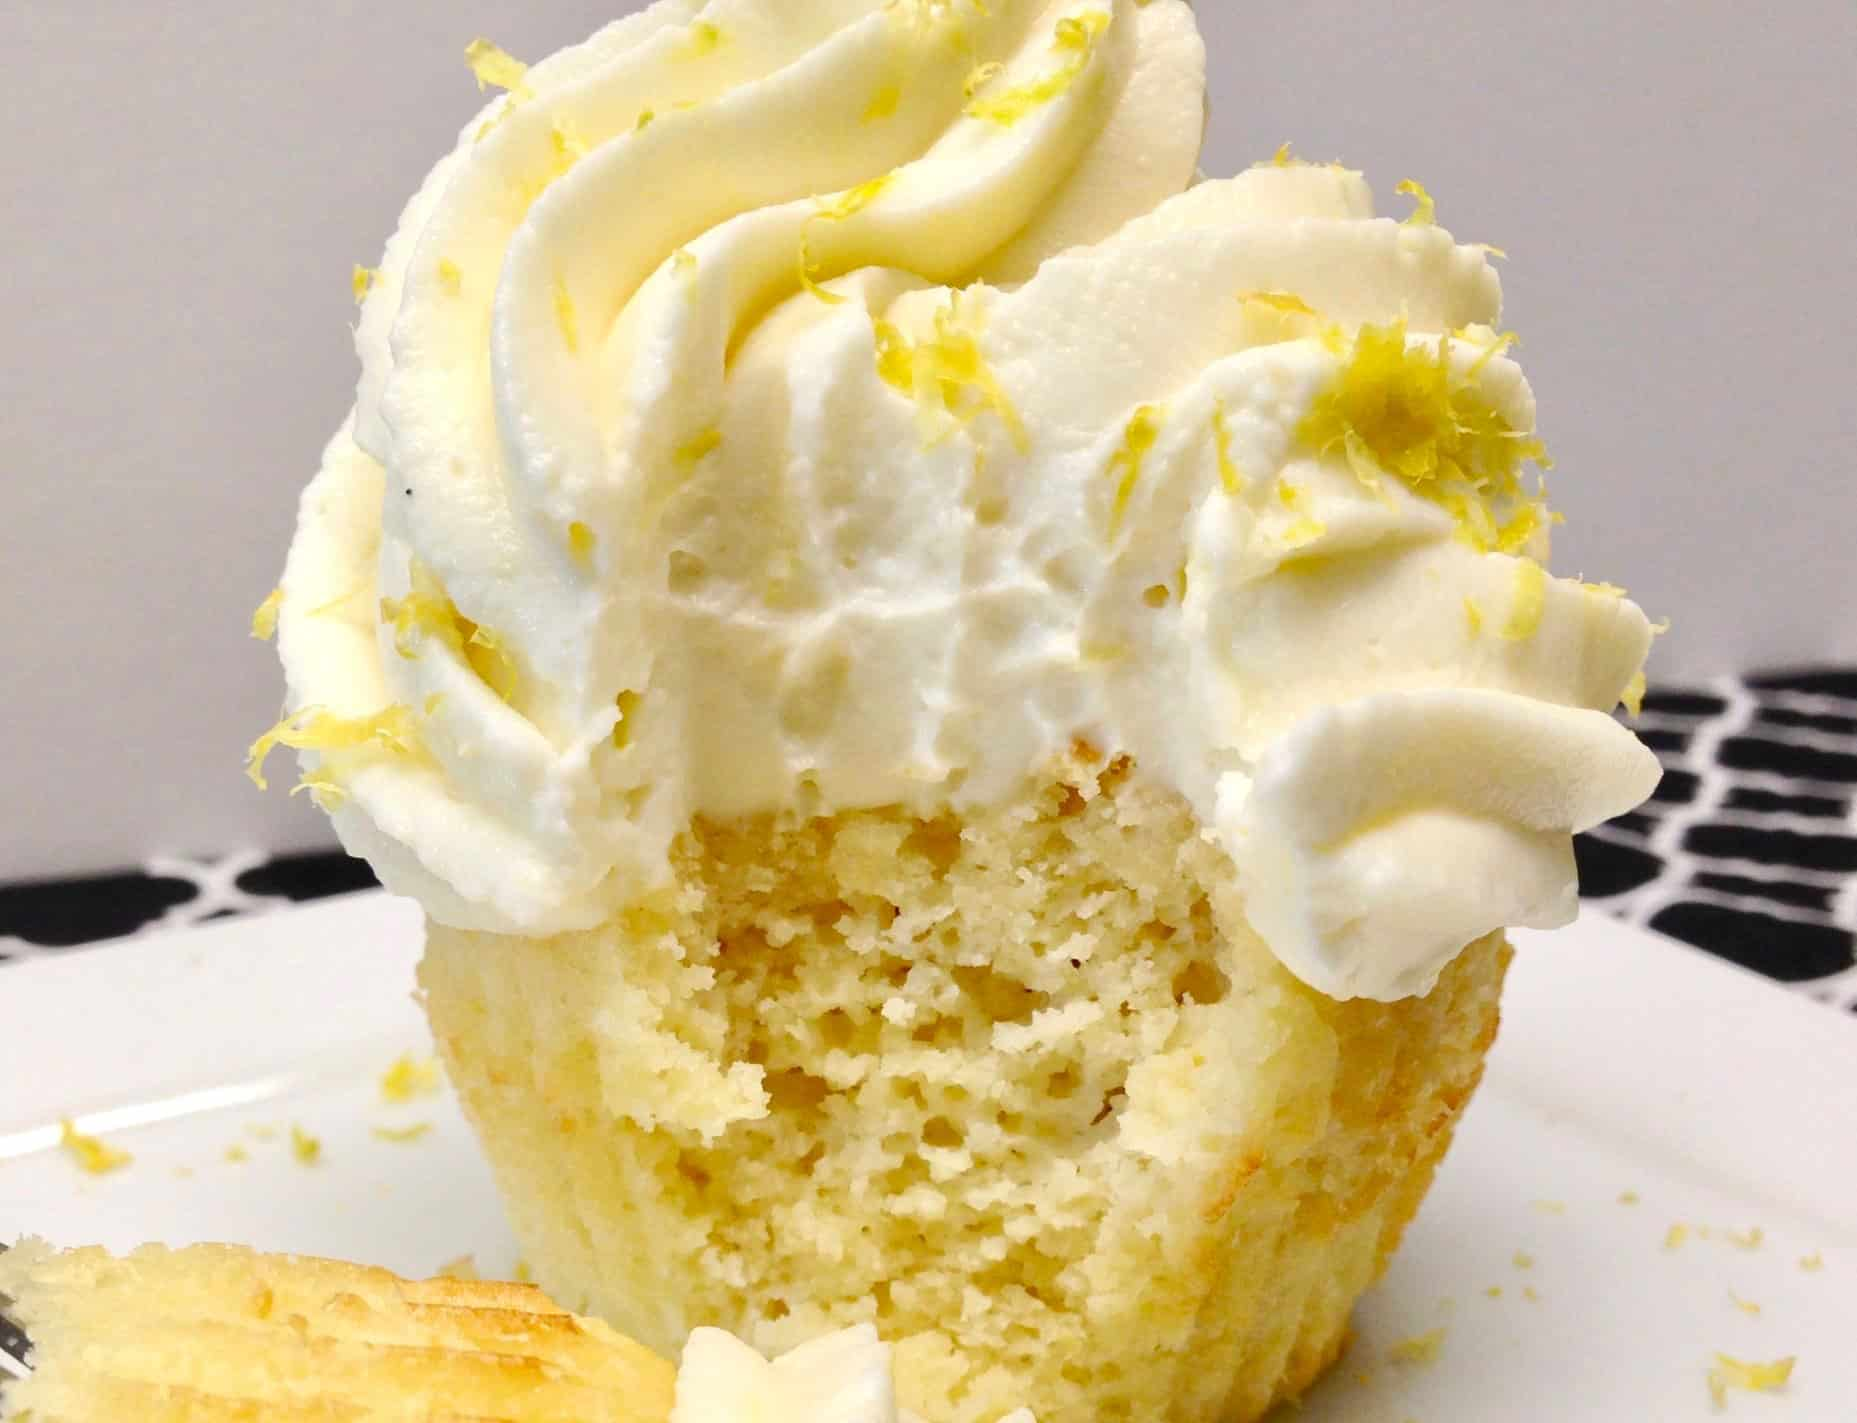 closeup of lemon frosted cupcake with bite taken out